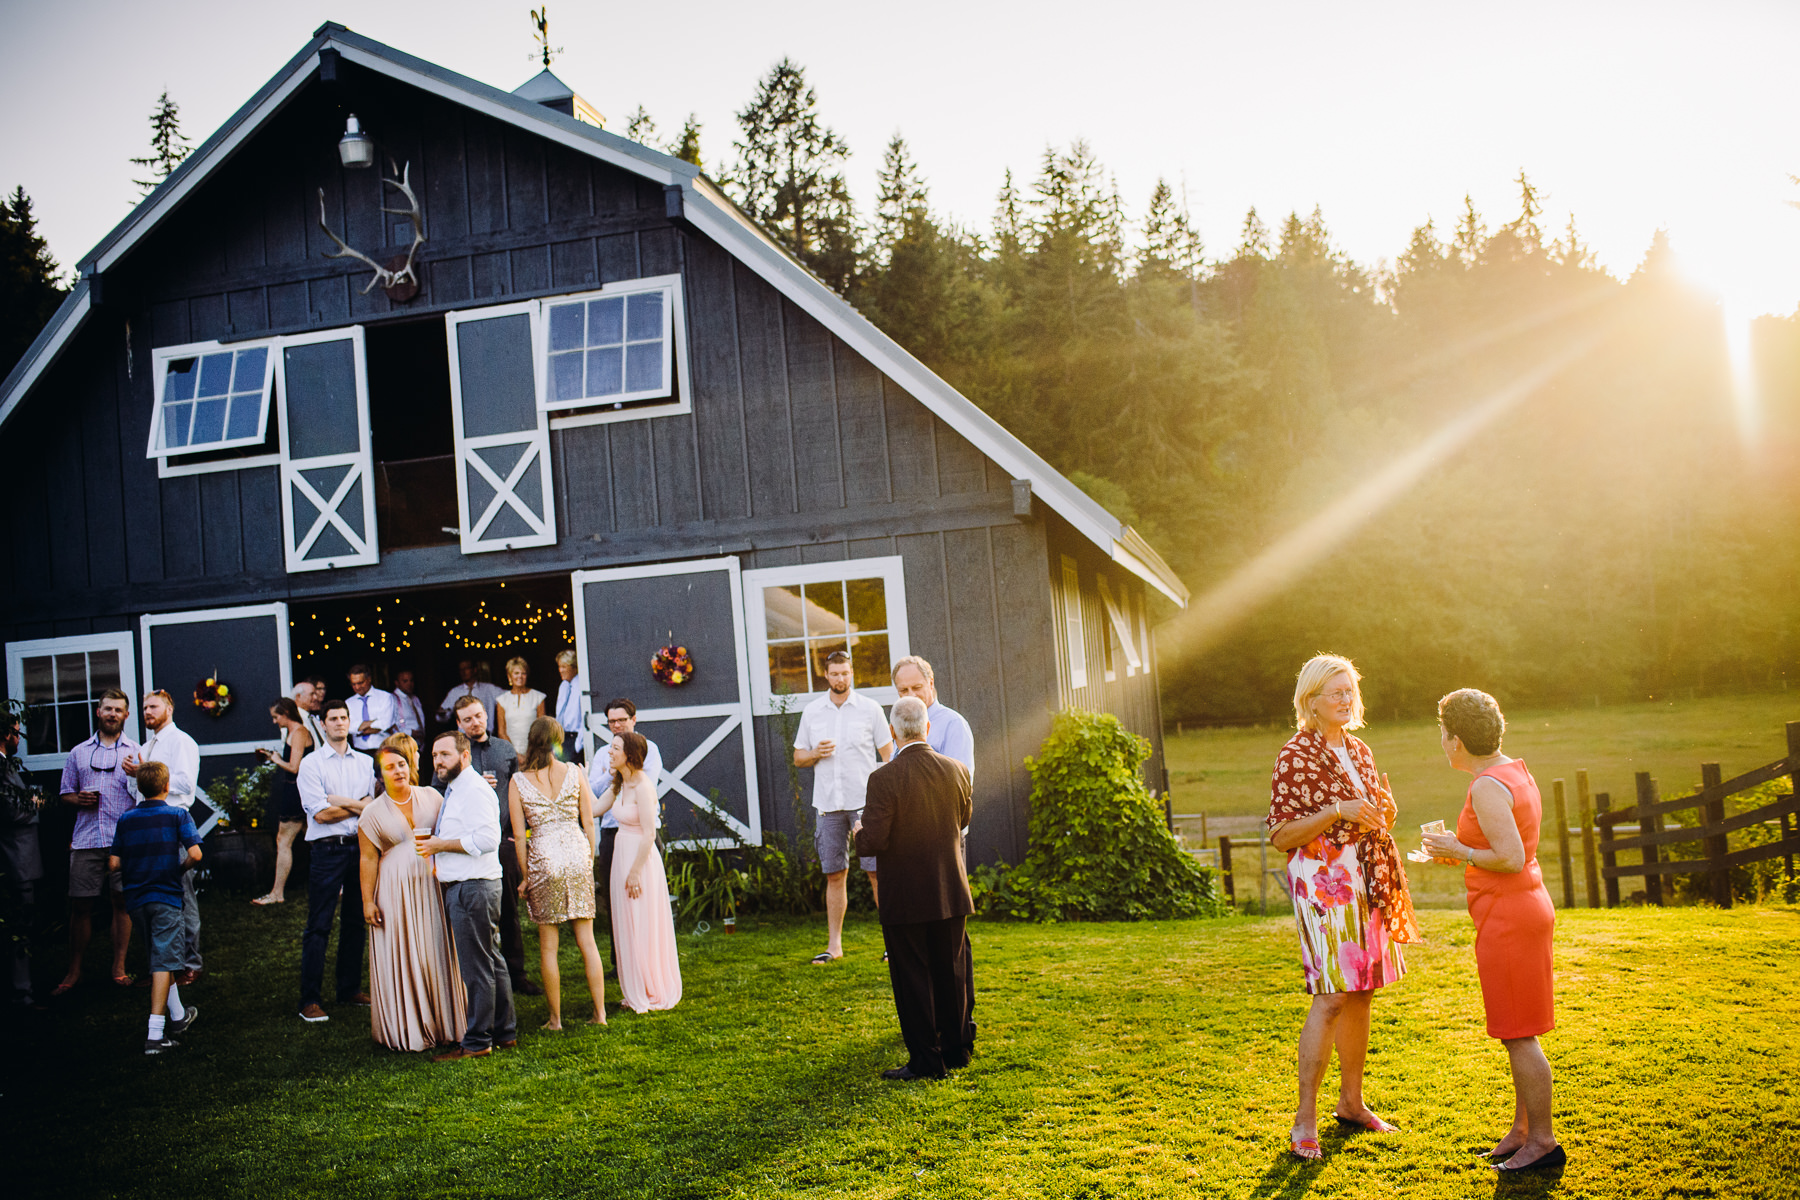 bainbridge-island-private-farm-wedding-18